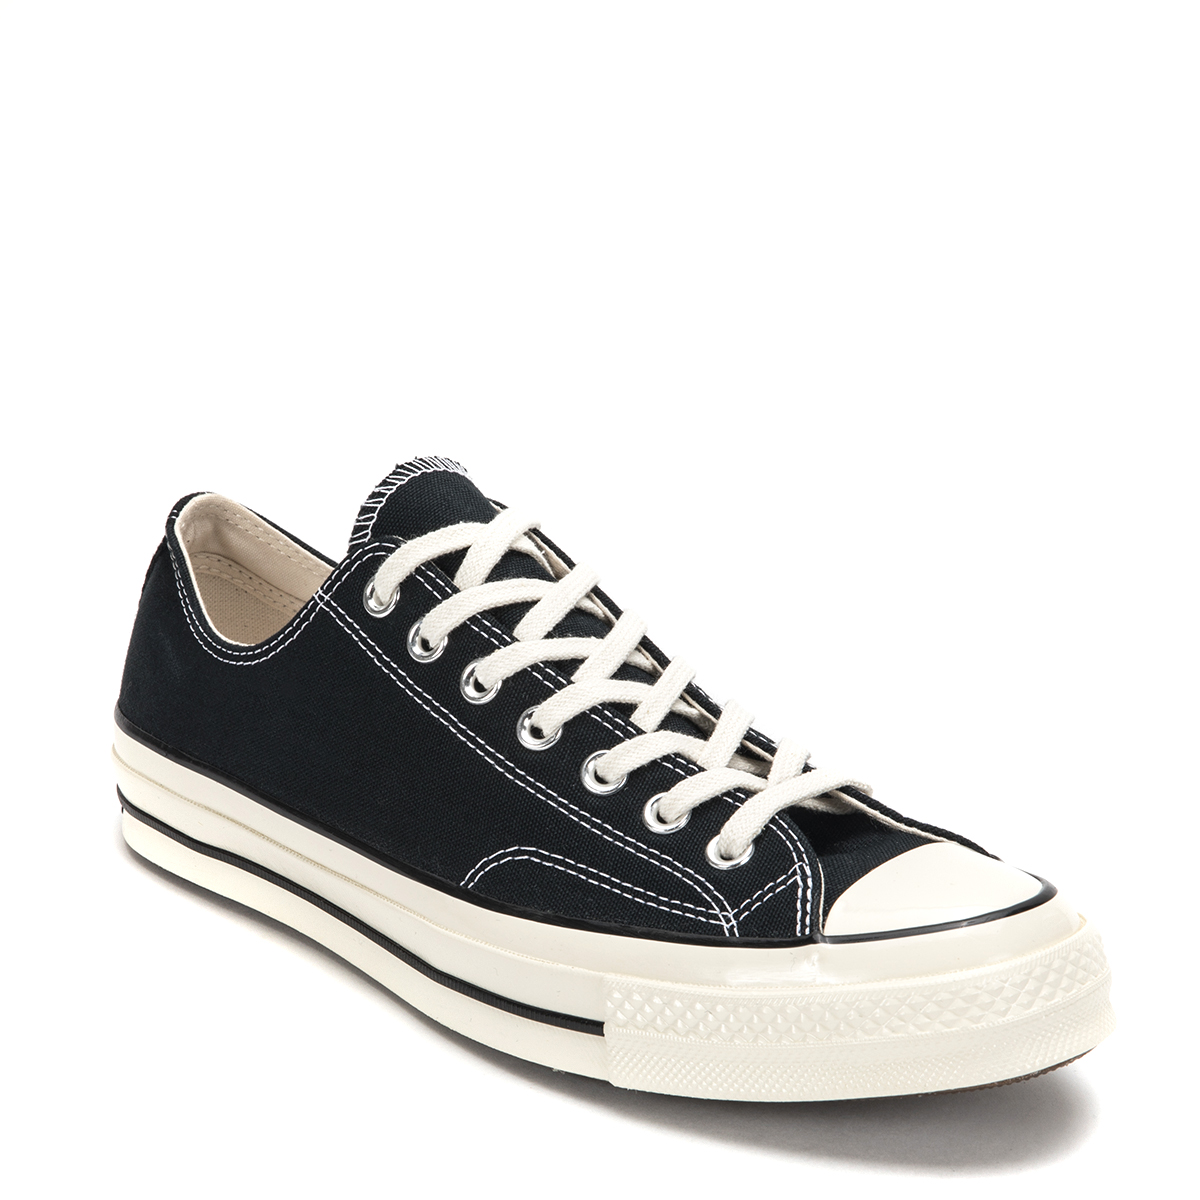 Converse Chuck Taylor All Star 70 Oxford Sneakers 144757C Black by